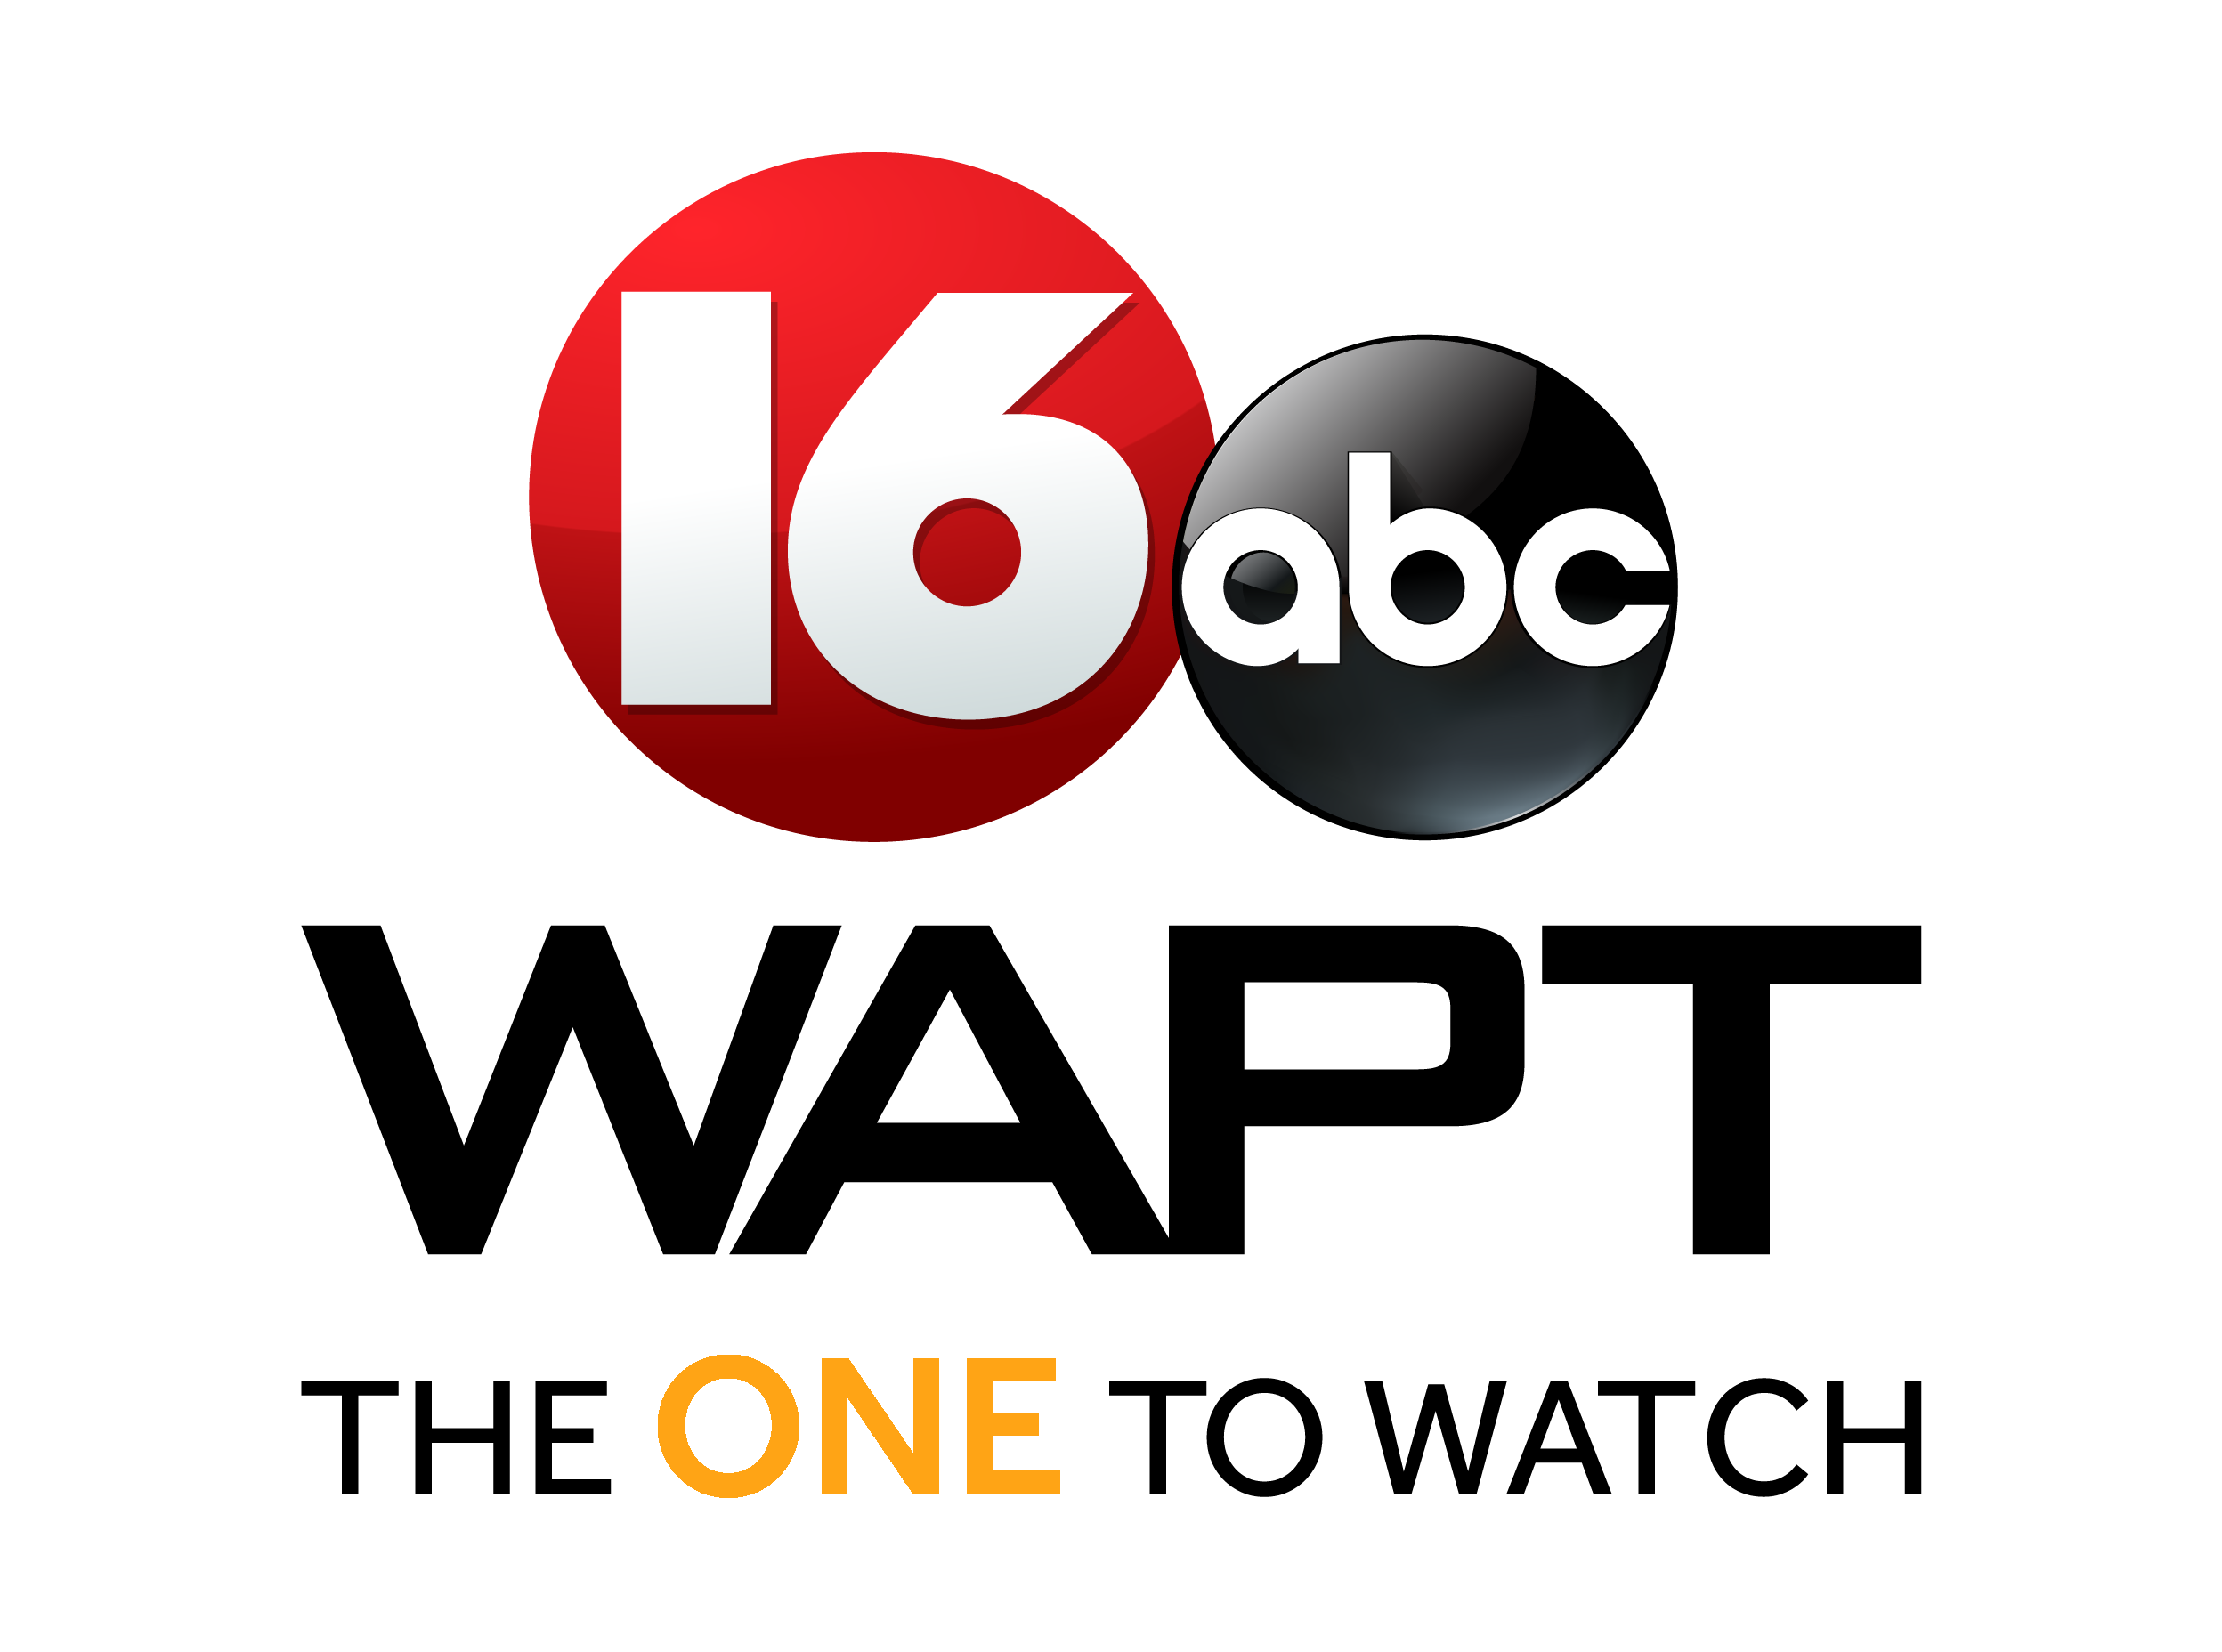 2019 Mississippi Blues Marathon News With WAPT (ABC) Channel 16